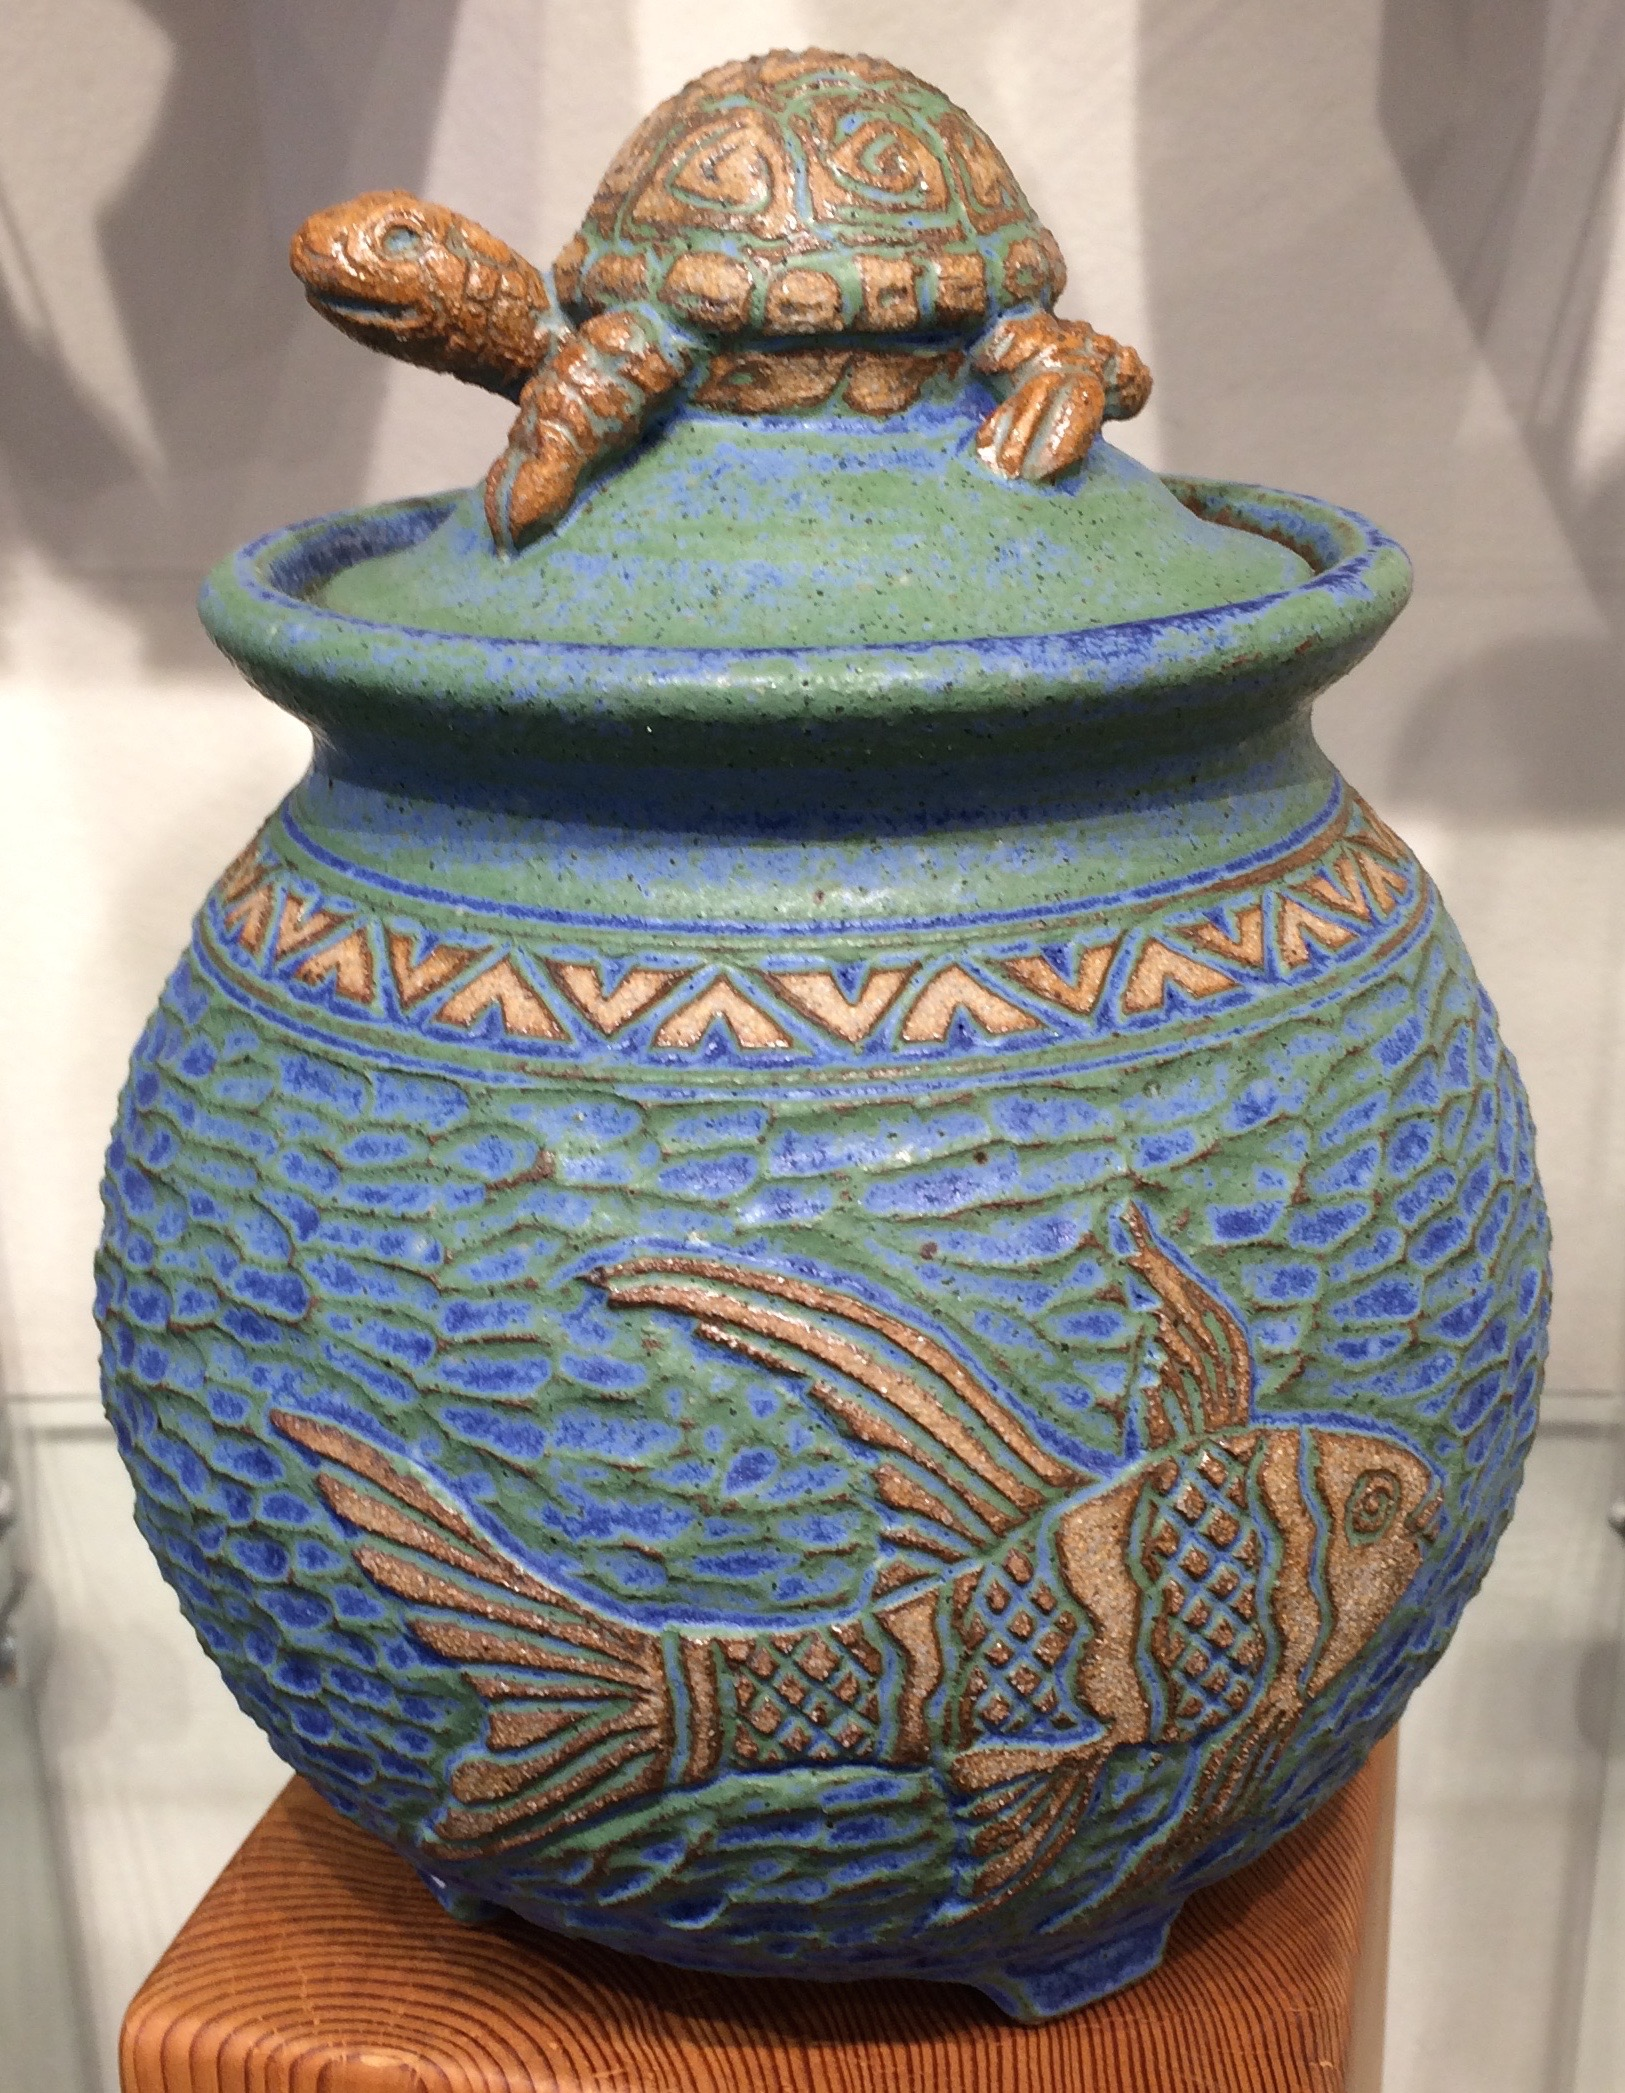 Turtle and Fish Jar